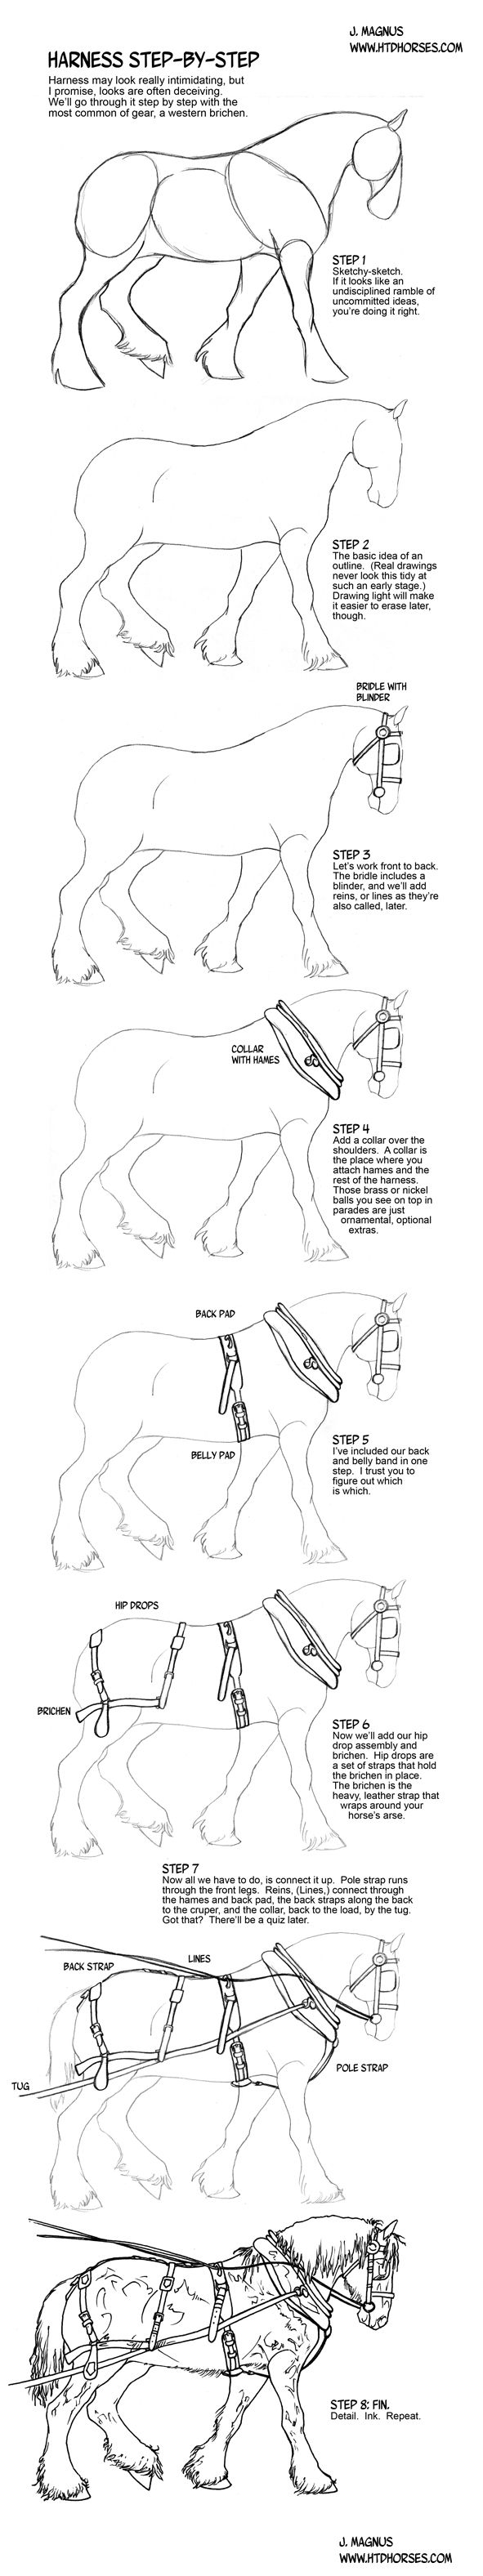 How to draw a Horse in Harness by sketcherjak.deviantart.com on @deviantART